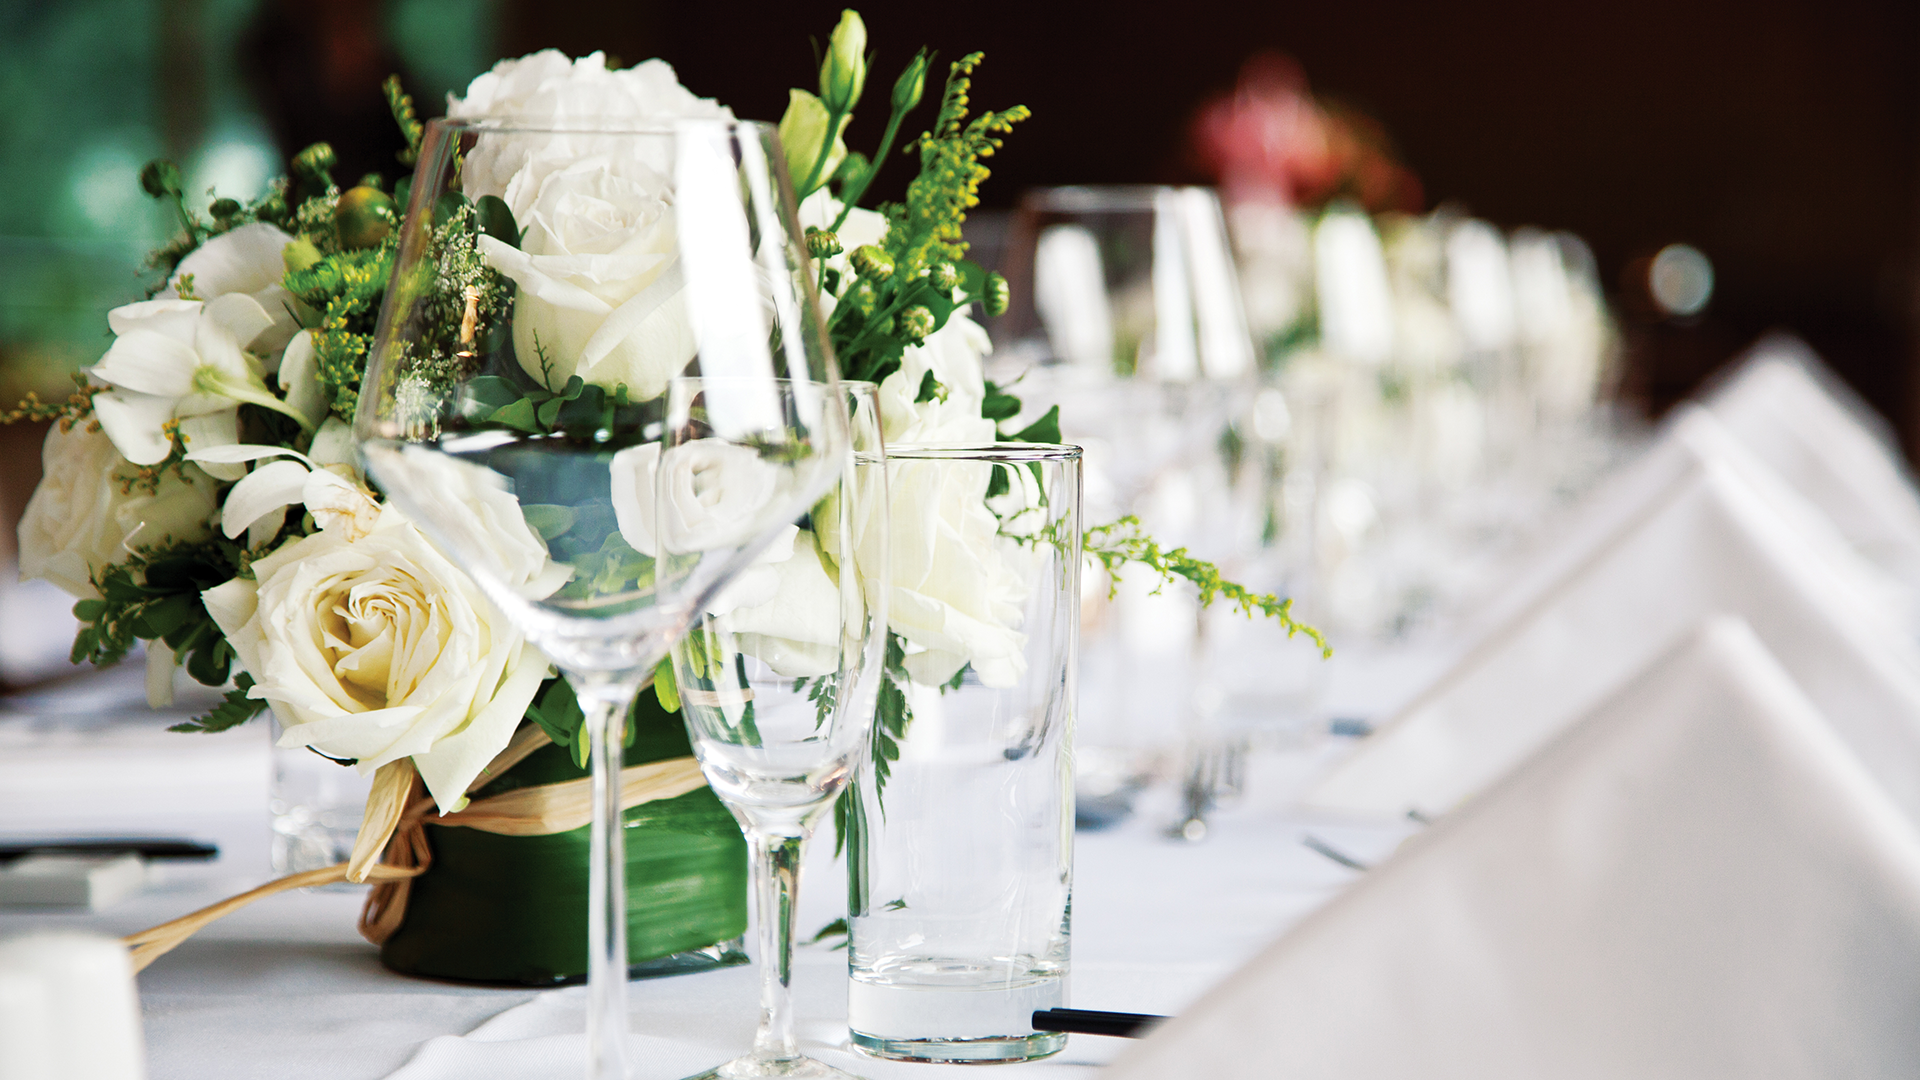 photo of table setting with flower arrangement